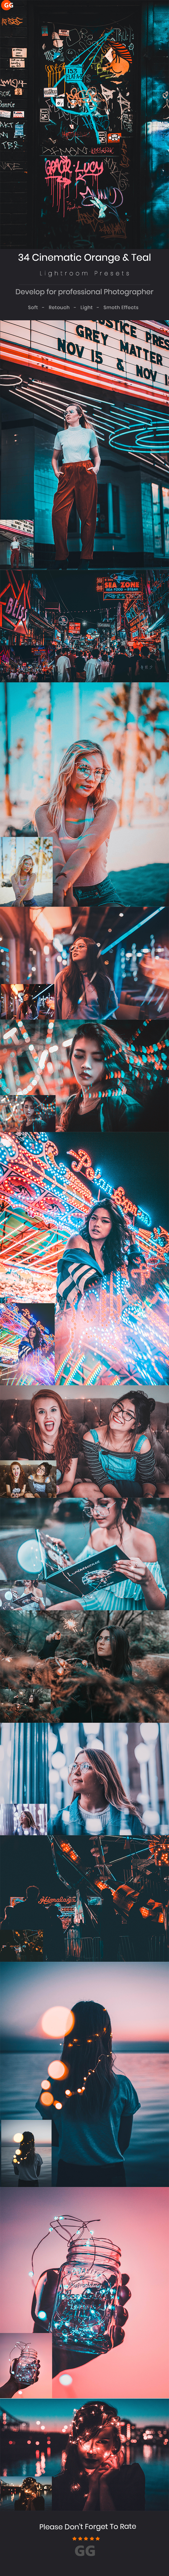 34 Cinematic Orange & Teal Look Lightroom Preset V3 - Cinematic Lightroom Presets